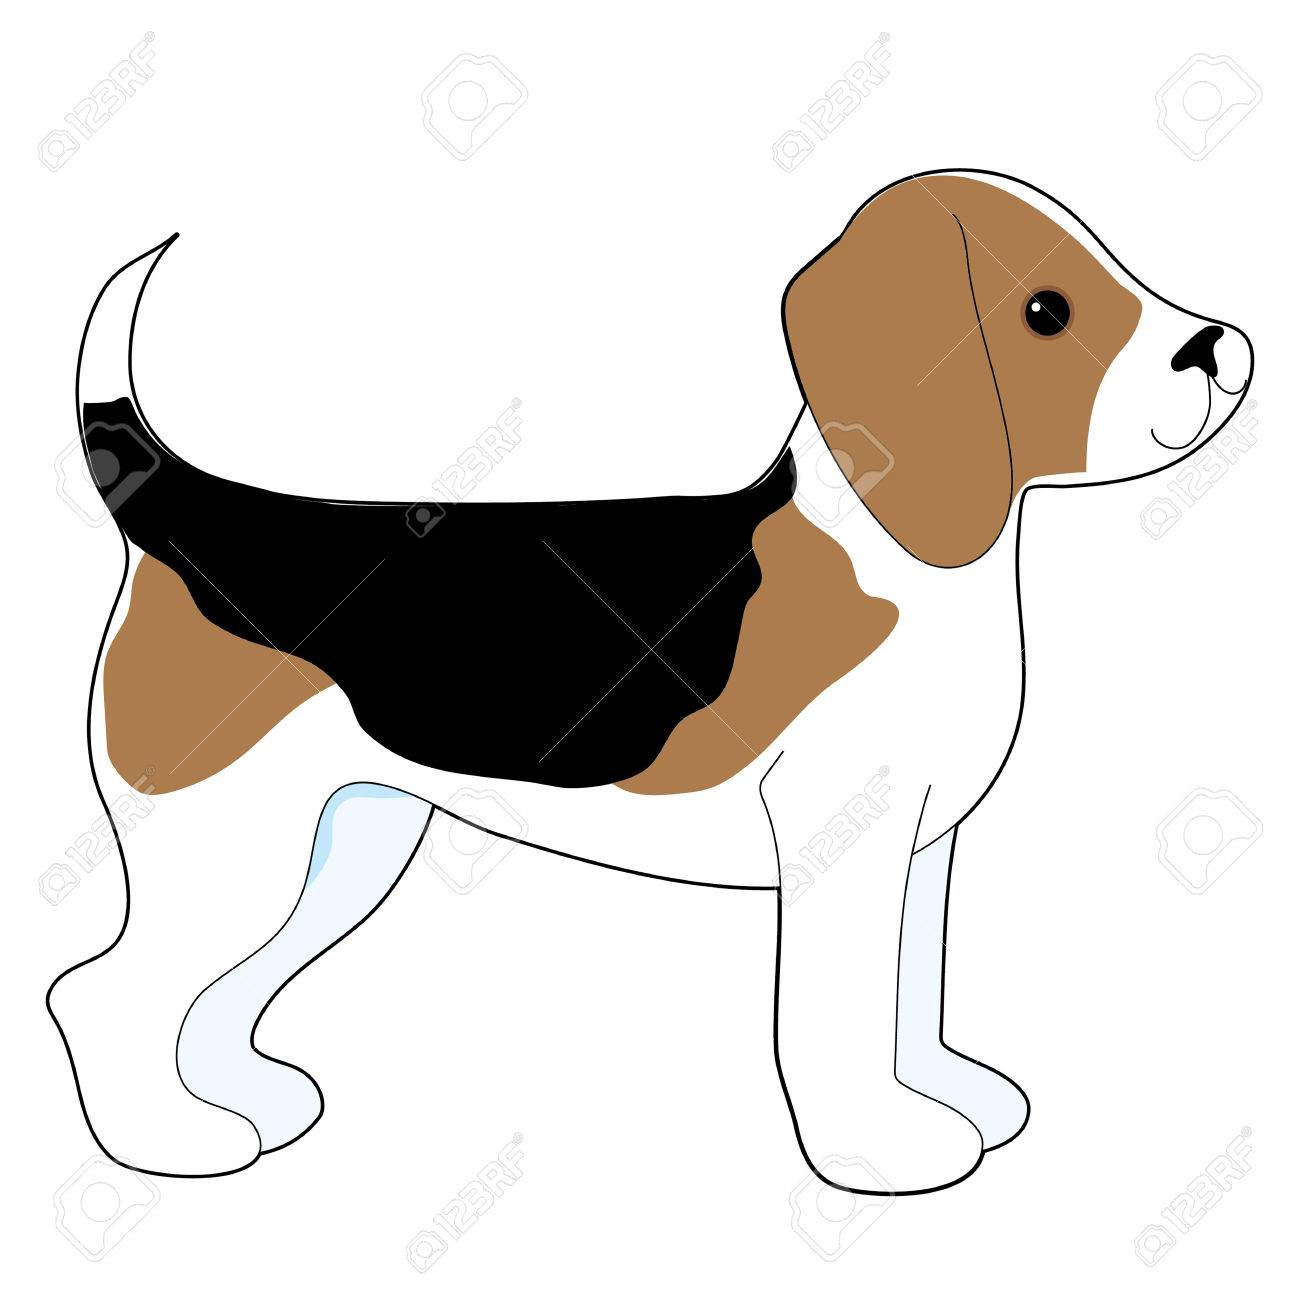 A cartoon drawing of a cute little Beagle puppy.